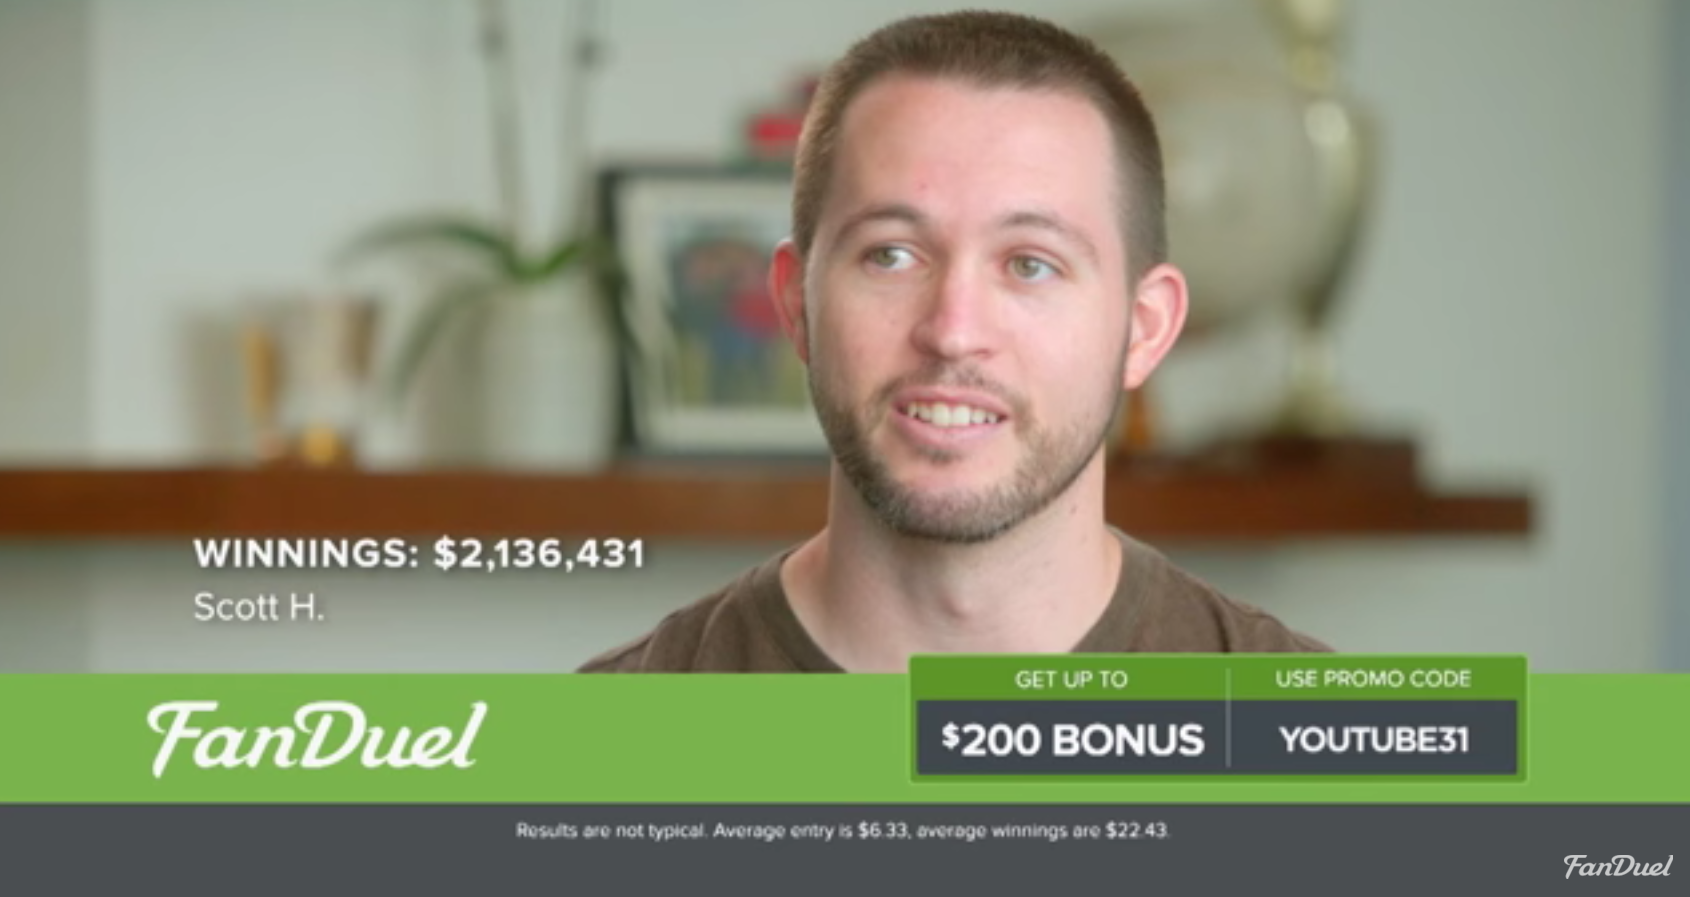 FanDuel CEO Admits: Maybe They Might Have Overdone It A Bit With The TV Ads